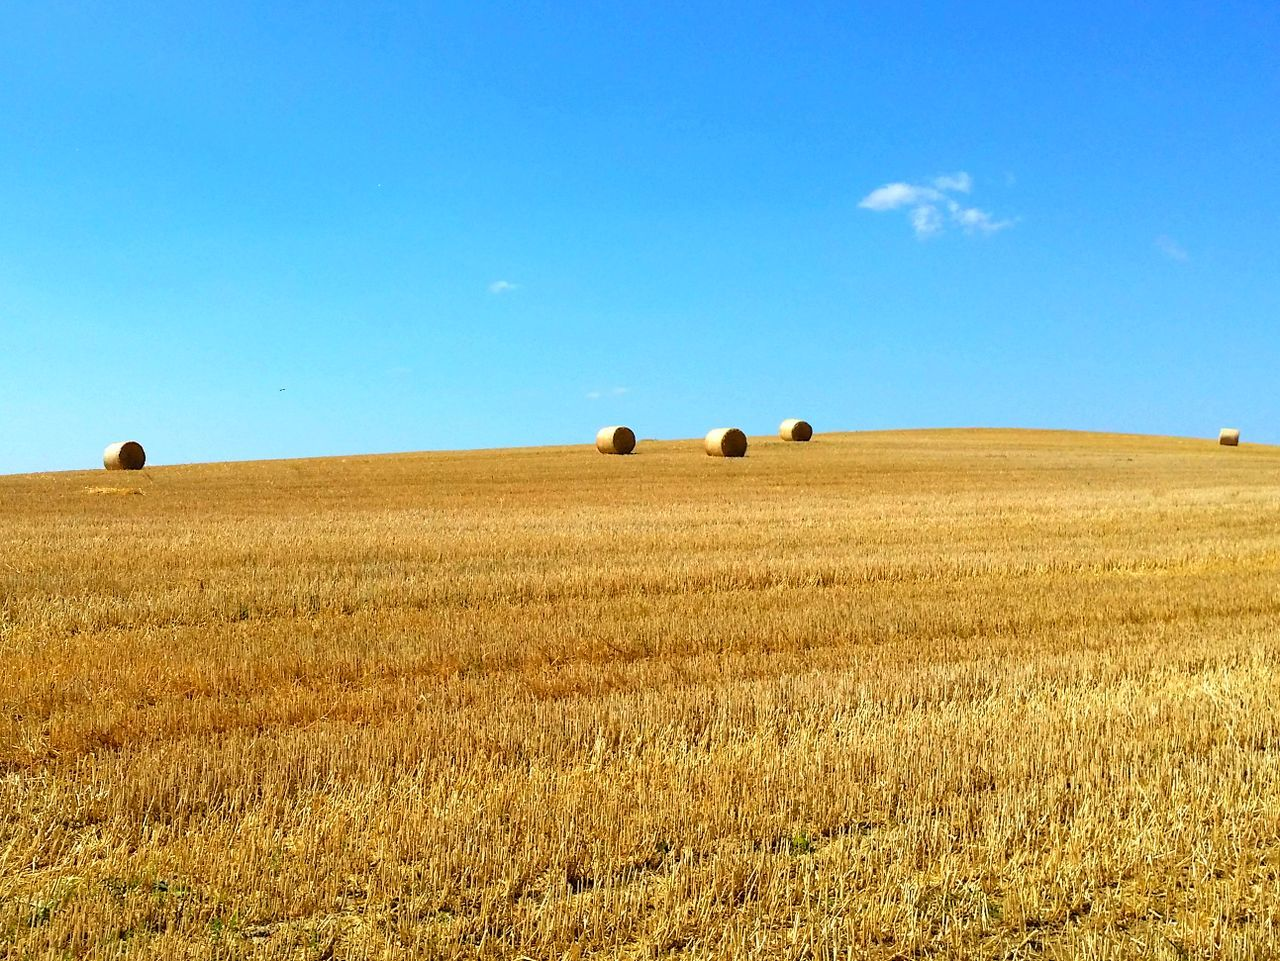 Agriculture Sky Field Rural Scene Day Cereal Plant Outdoors Nature Landscape Blue No People Clear Sky Combine Harvester Cornfield Cornfield And Sky Premium Premium Collection